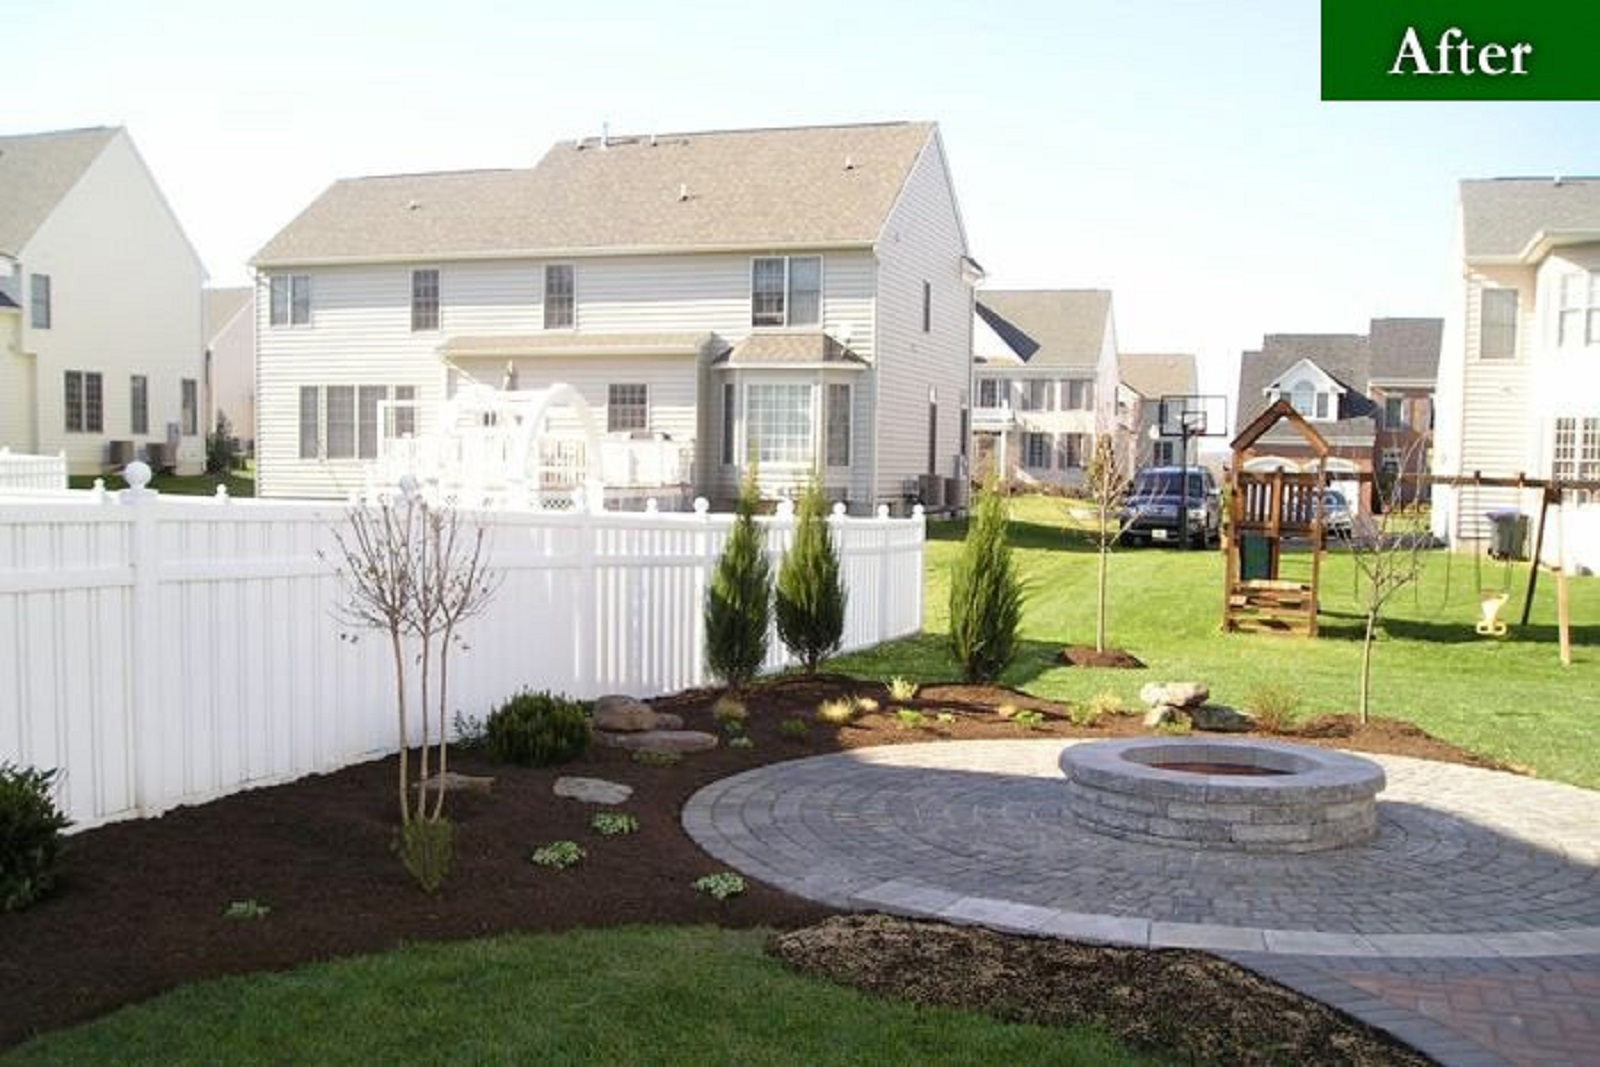 Back yard after a landscape design project of fire pit and stone heater